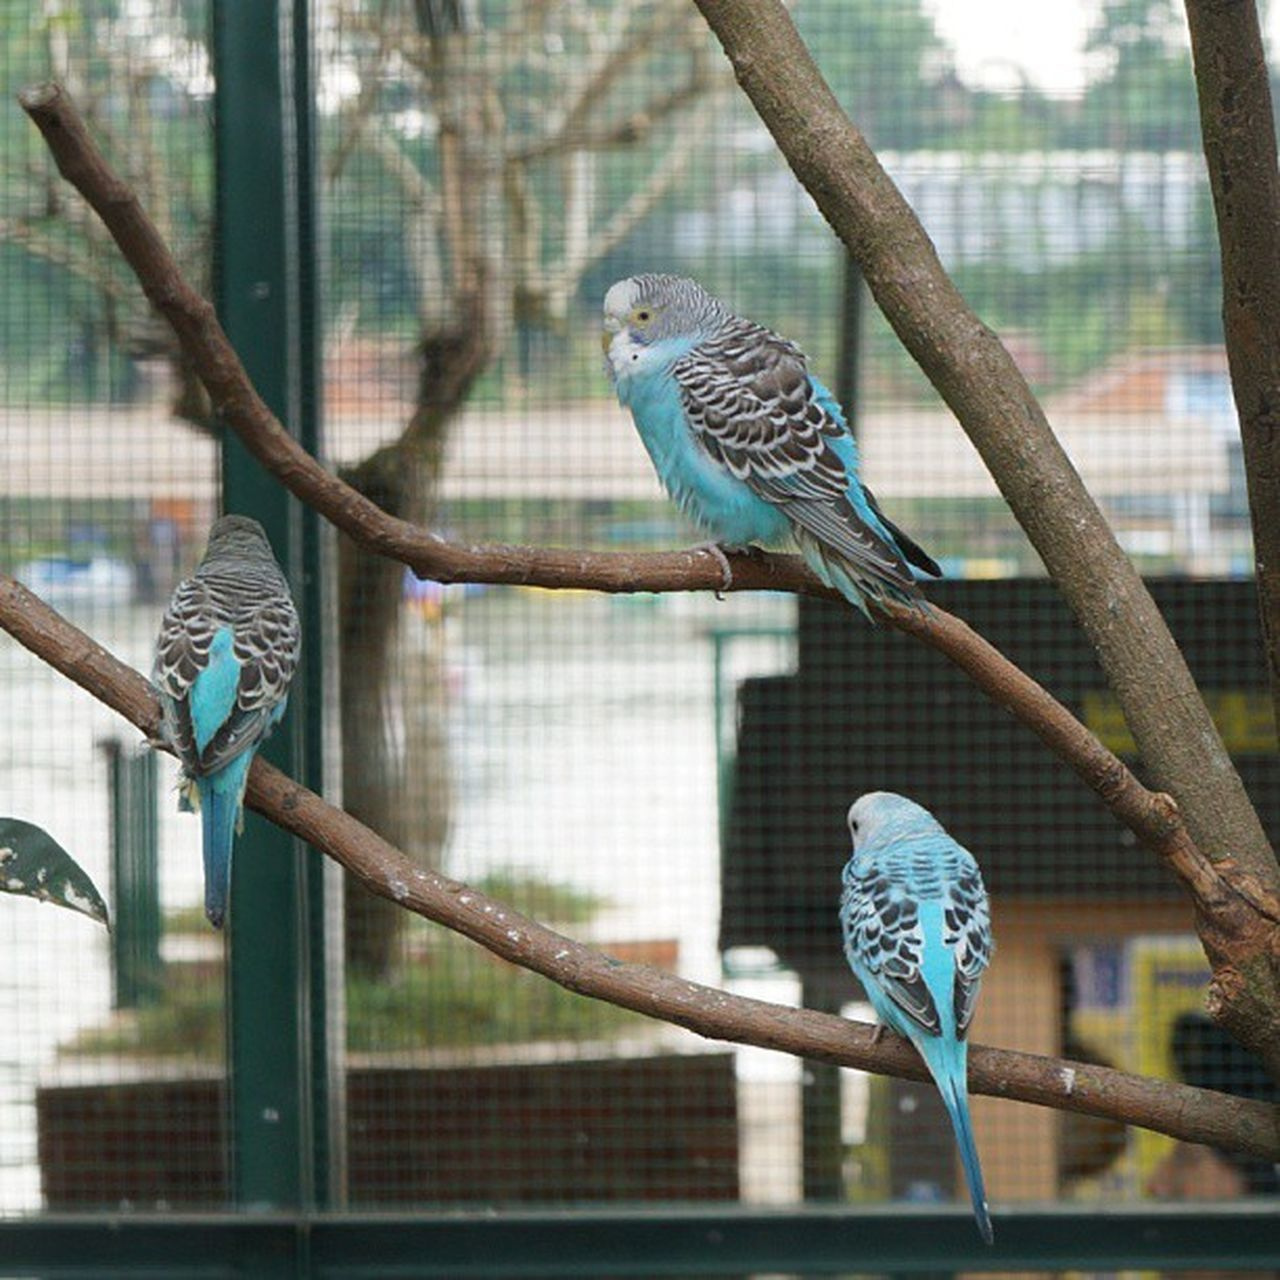 bird, perching, animal themes, animal wildlife, animals in the wild, parrot, budgerigar, day, nature, tree, outdoors, no people, beauty in nature